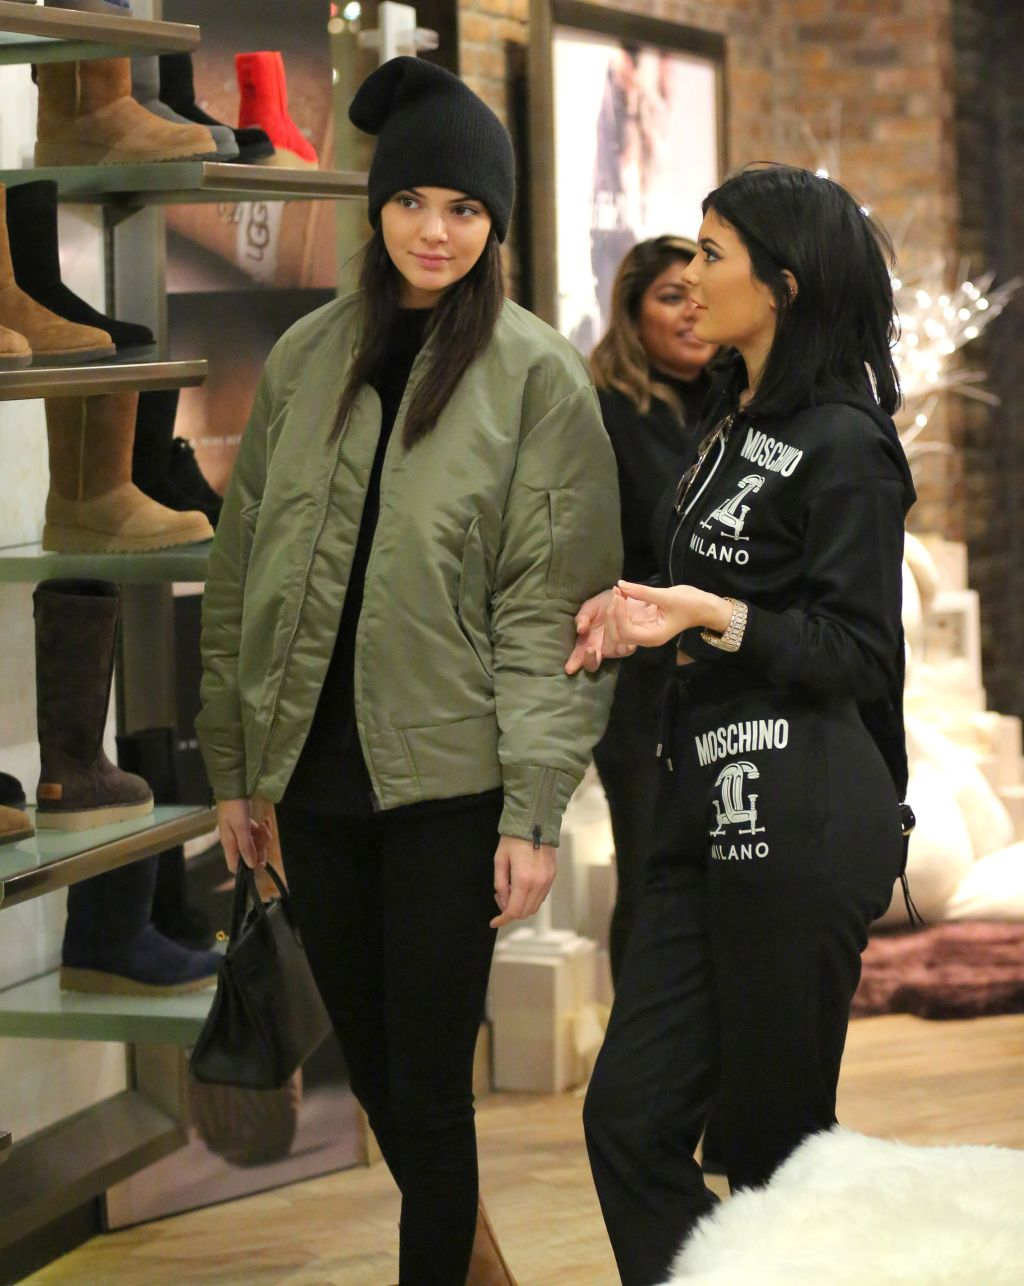 Kylie Jenner and Kendall Jenner at the UGG store in NYC